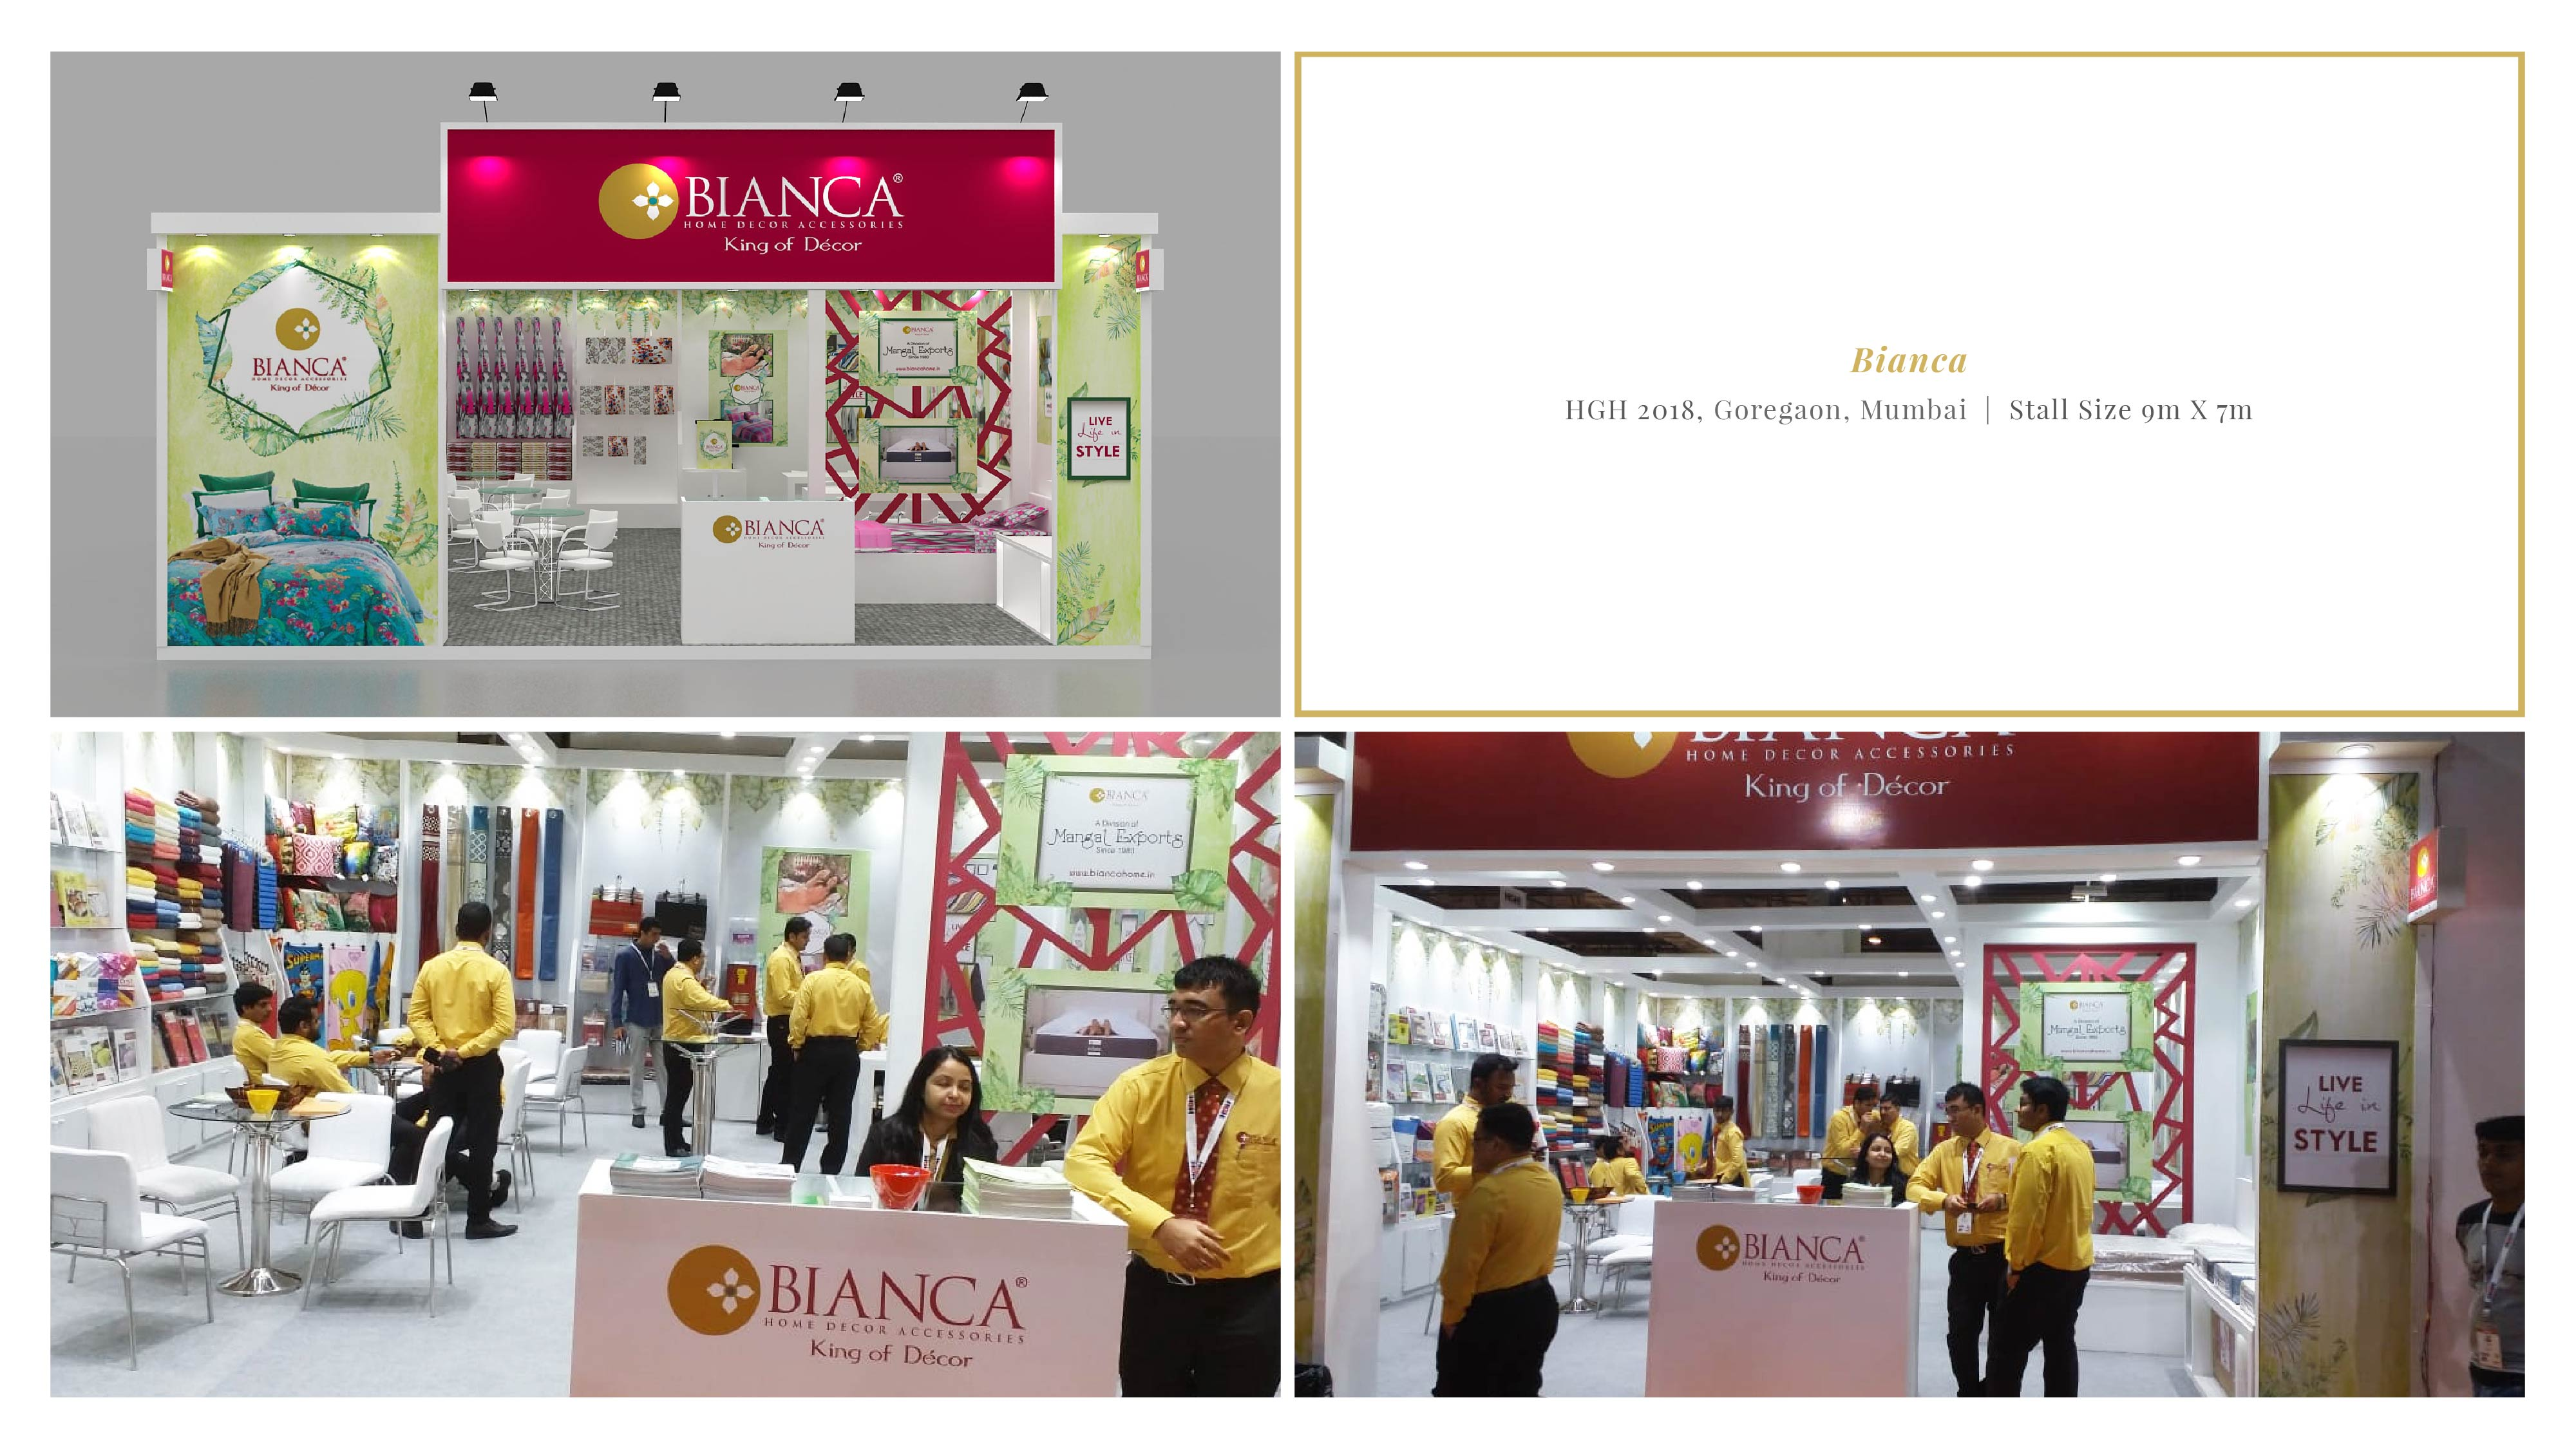 Stand out at Trade Shows with Unique Booth Design Ideas